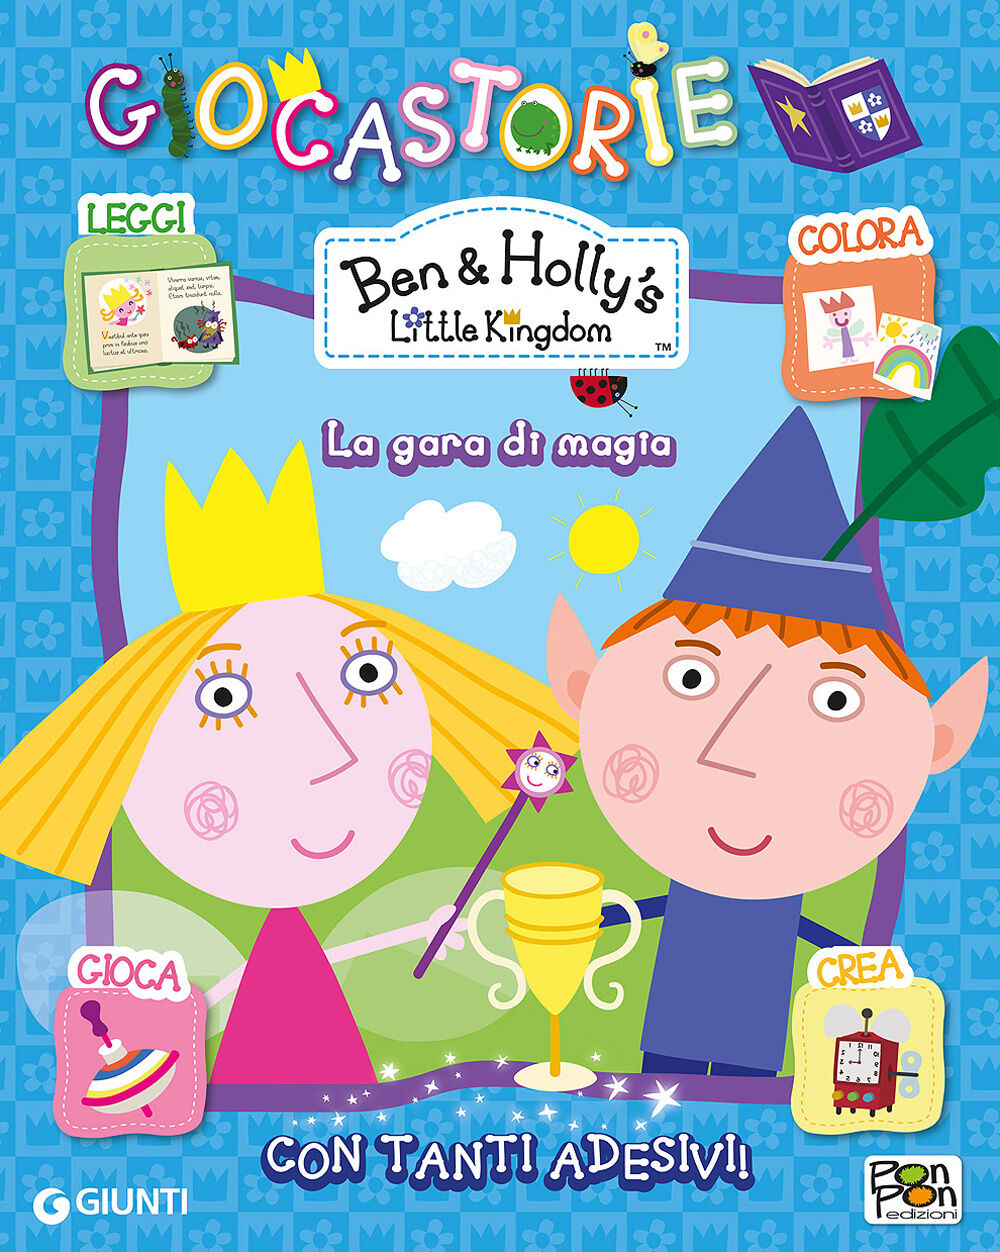 La gara di magia. Giocastorie. Ben & Holly's Little Kingdom. Con adesivi